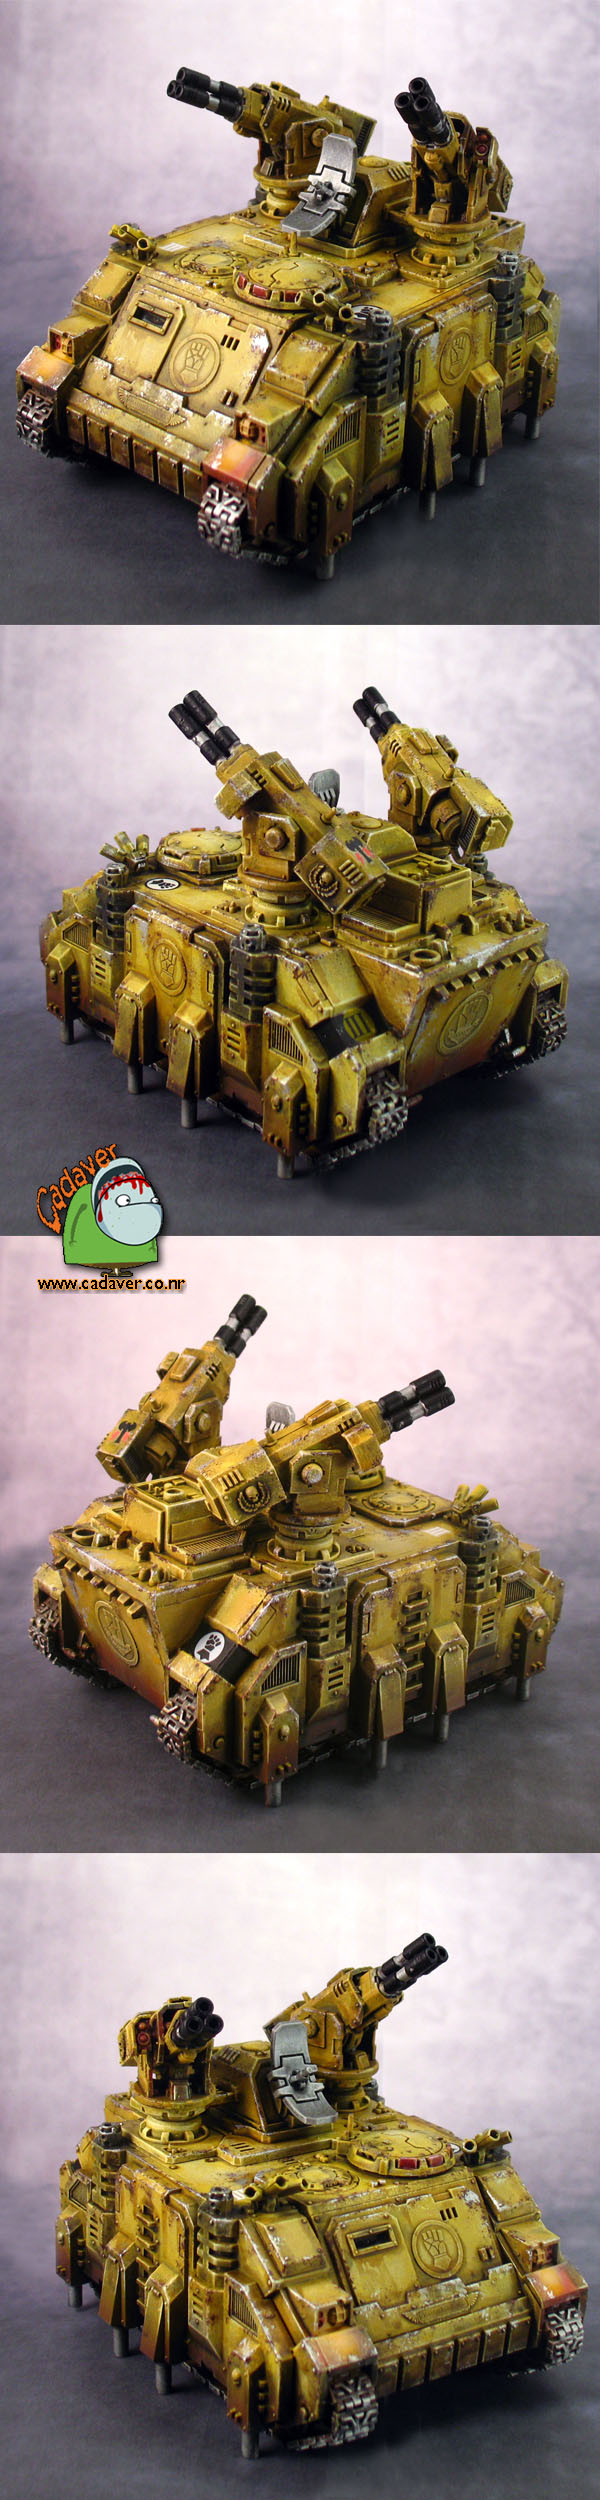 Space Marines Imperial Fists Stalker